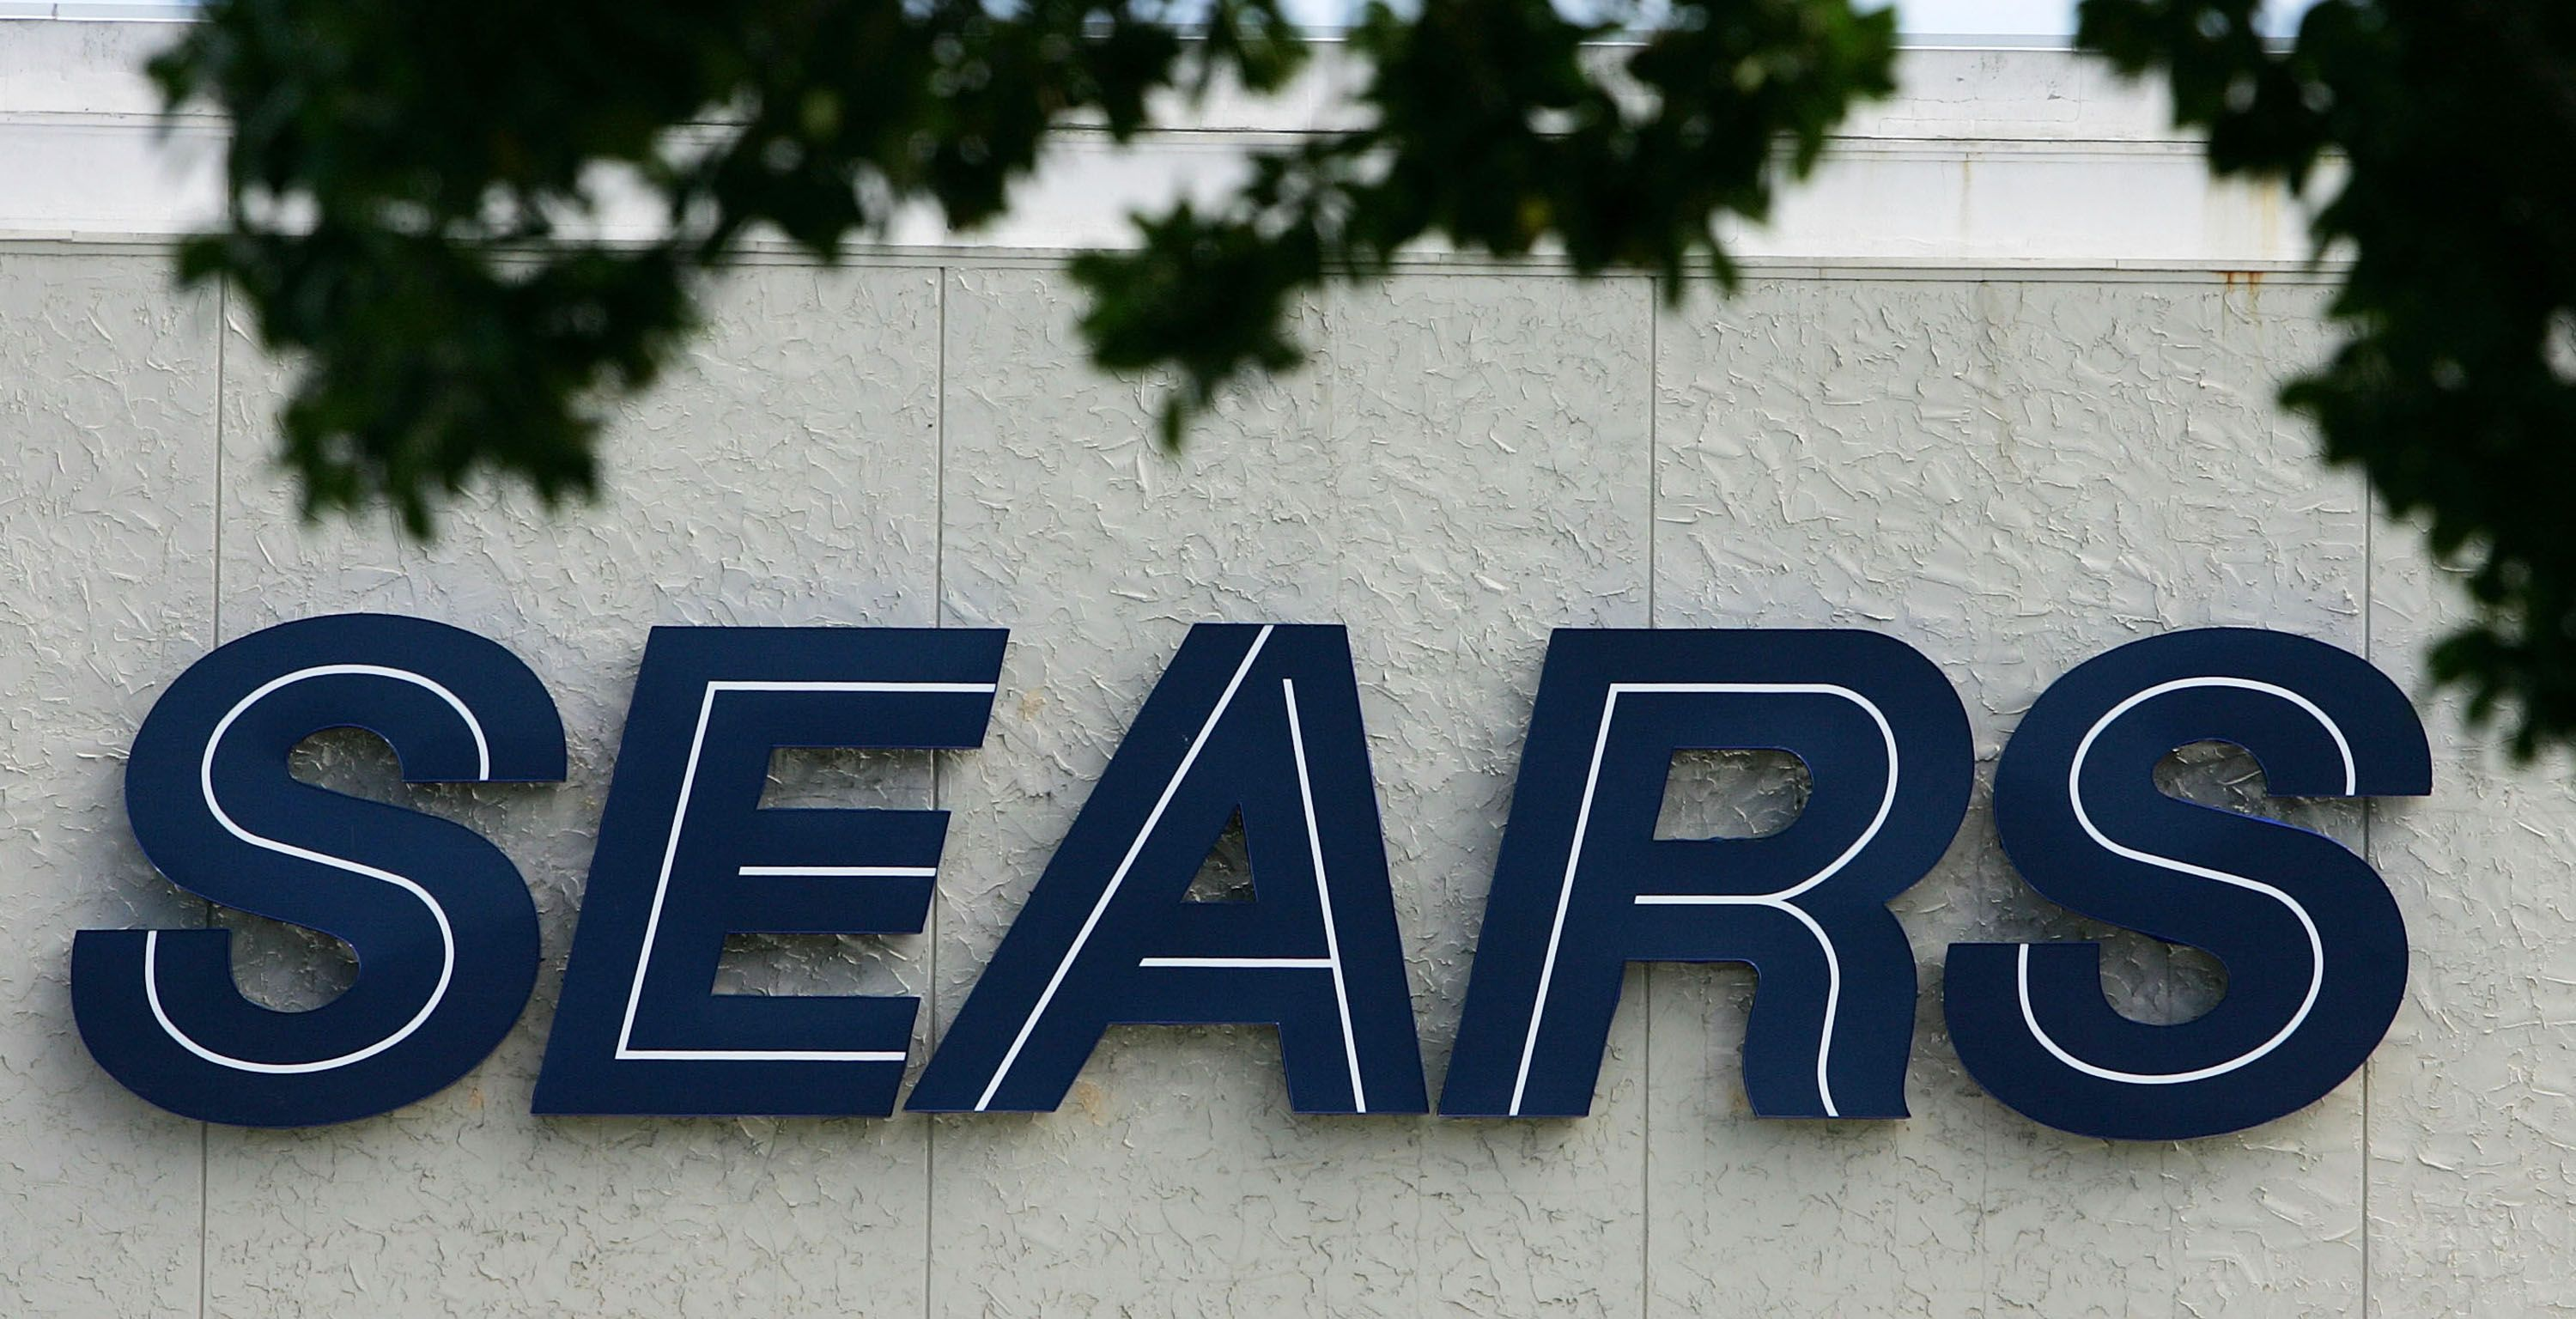 Sears and Kmart Closing 63 More Stores - Sears Kmart Closings 2018